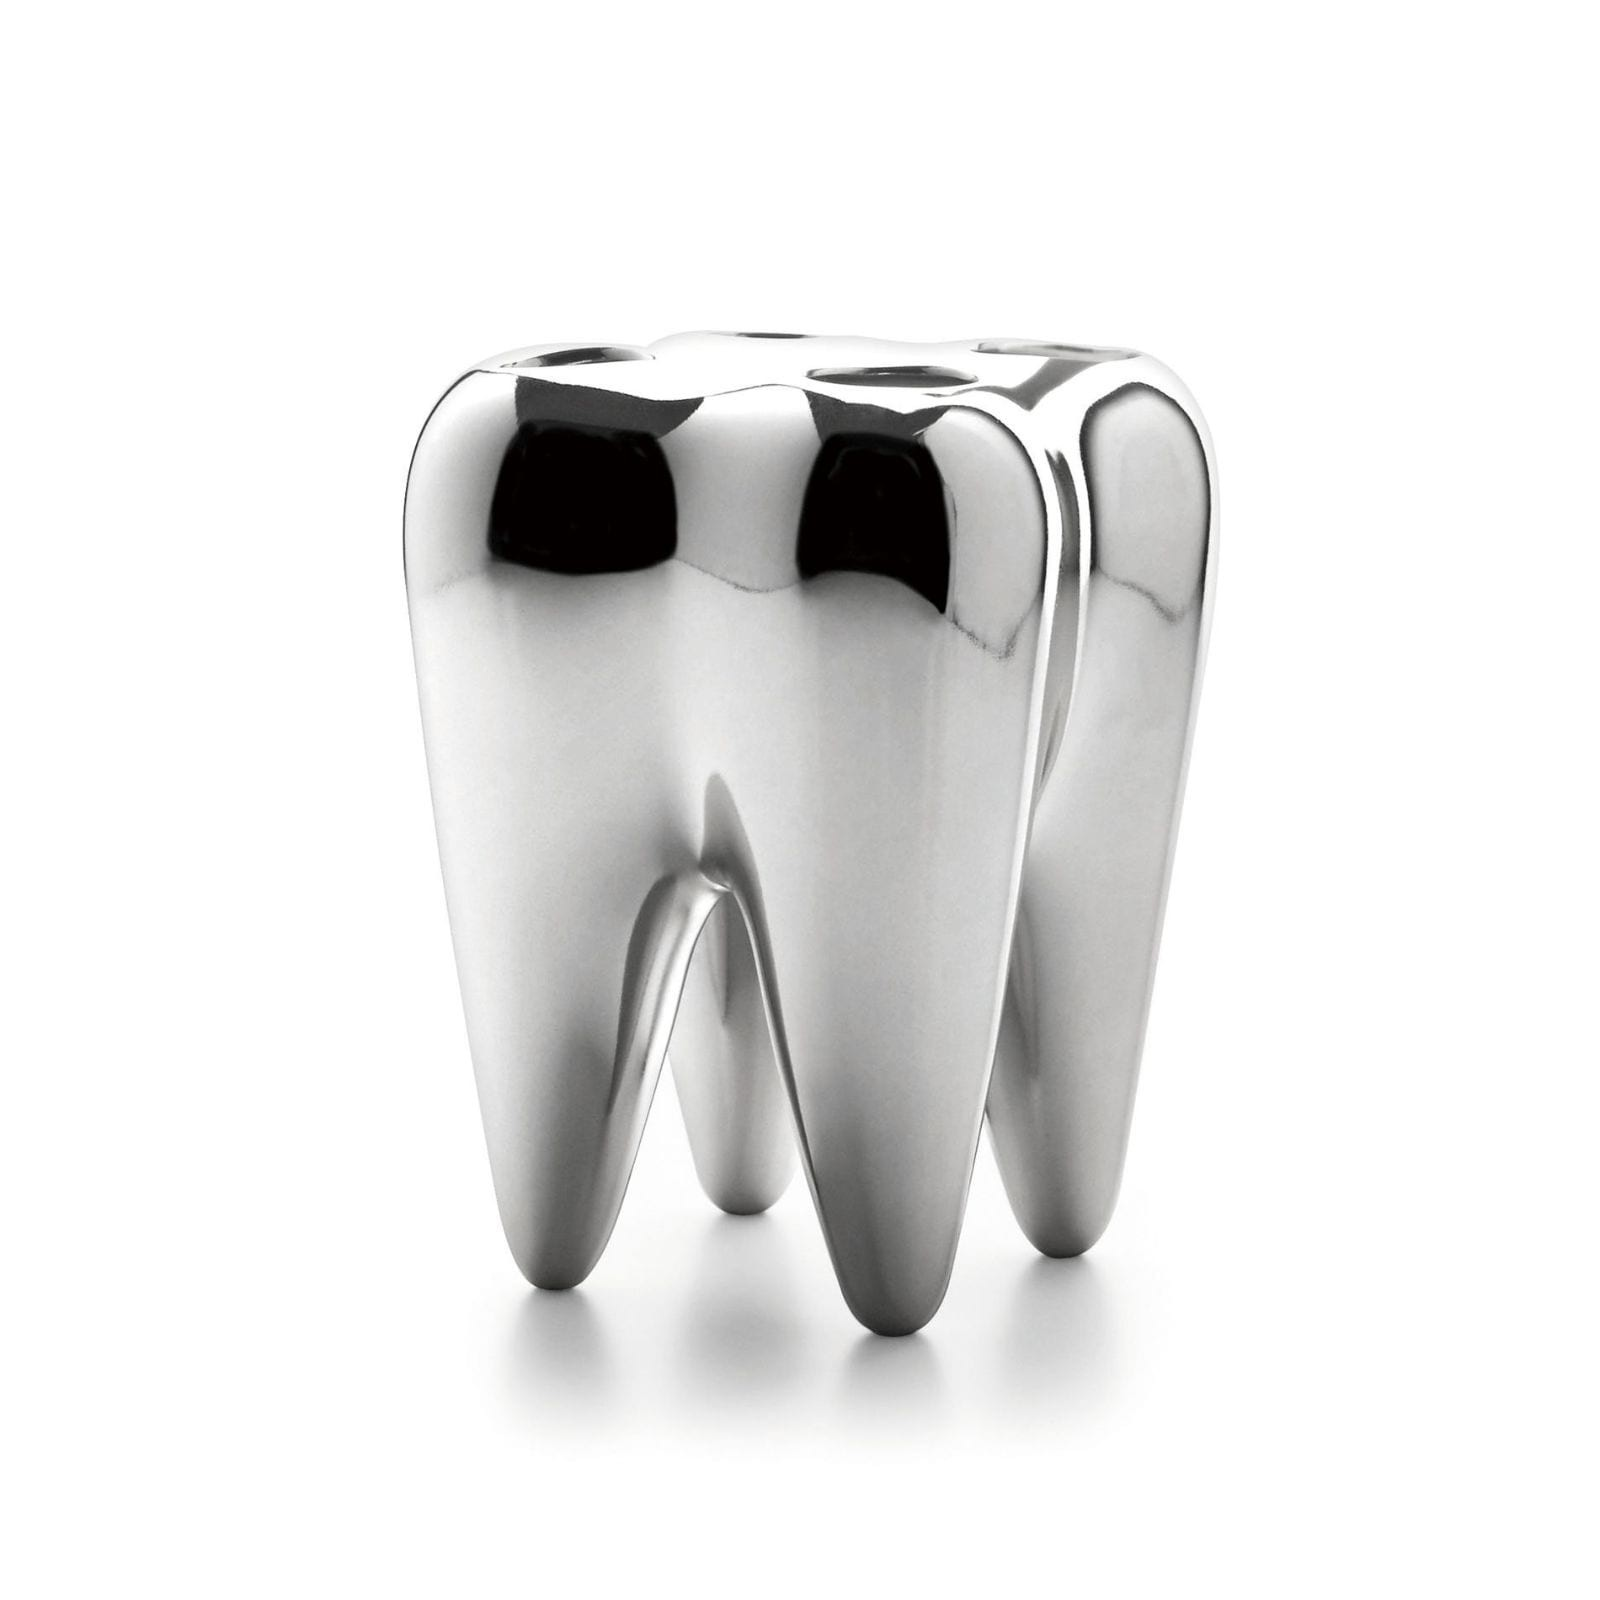 SILVER TOOTH Toothbrush Holder